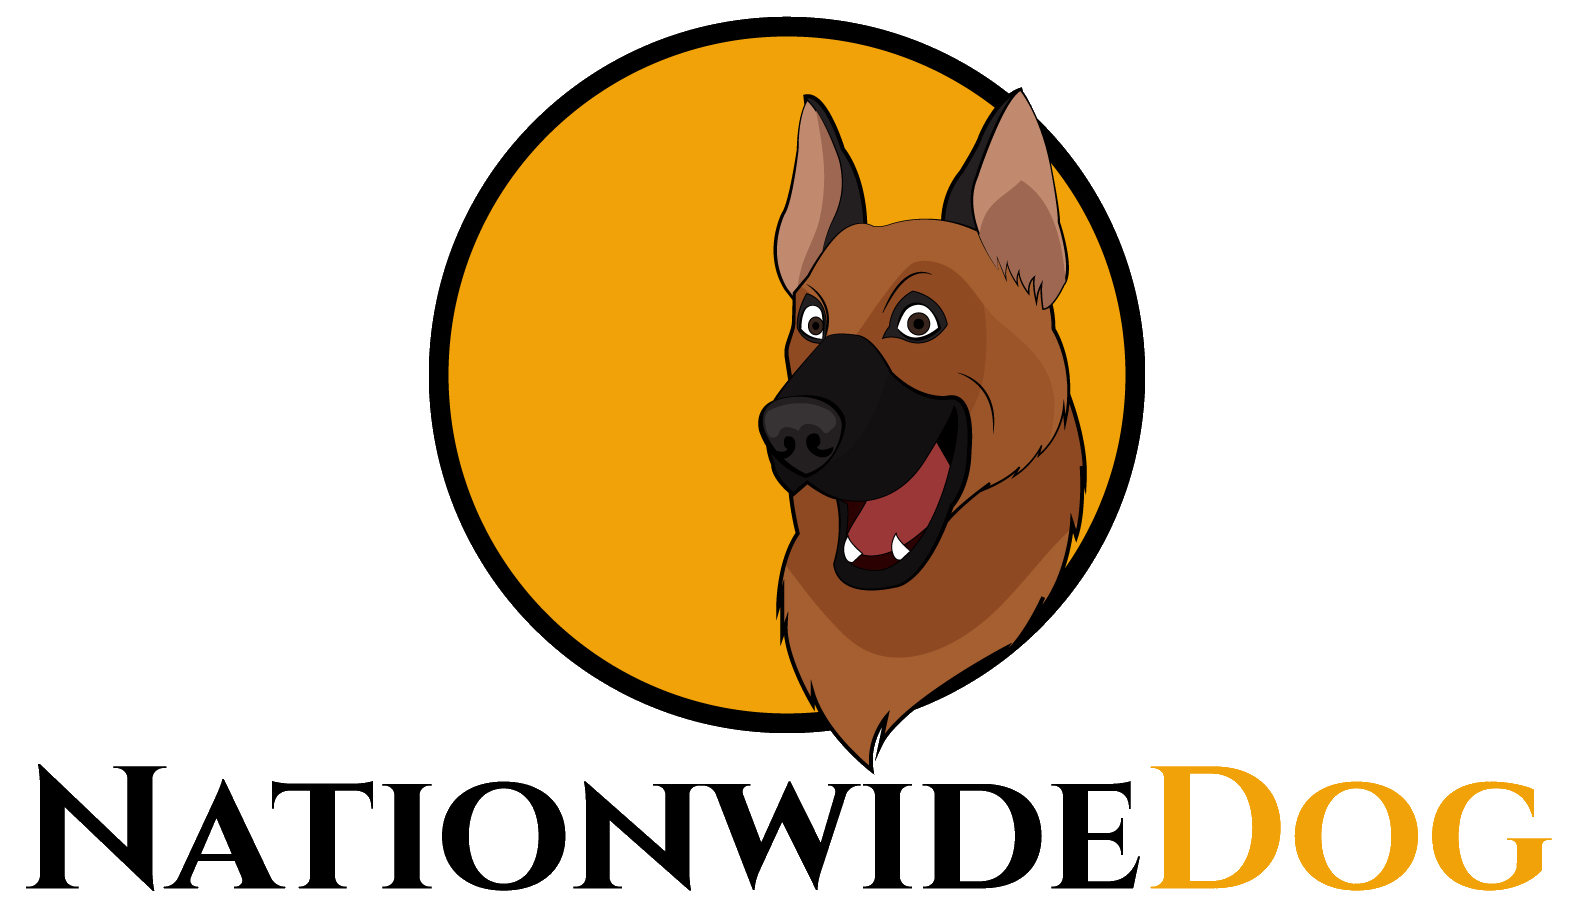 NationwideDog